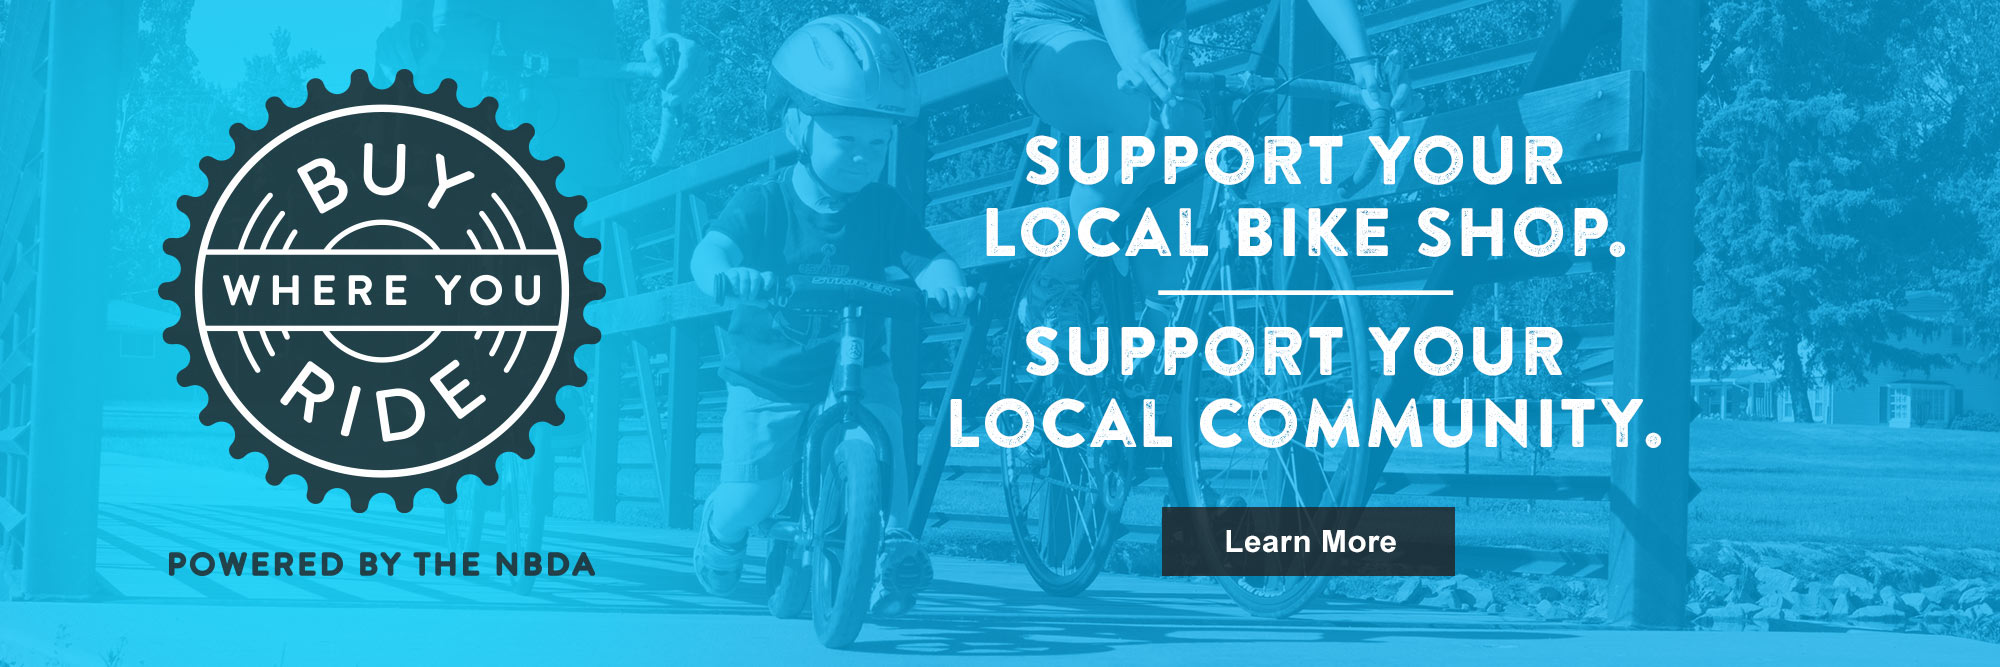 Shop local - The Bicycle Store in Hermitage is your one stop shop for parts, sales, and service